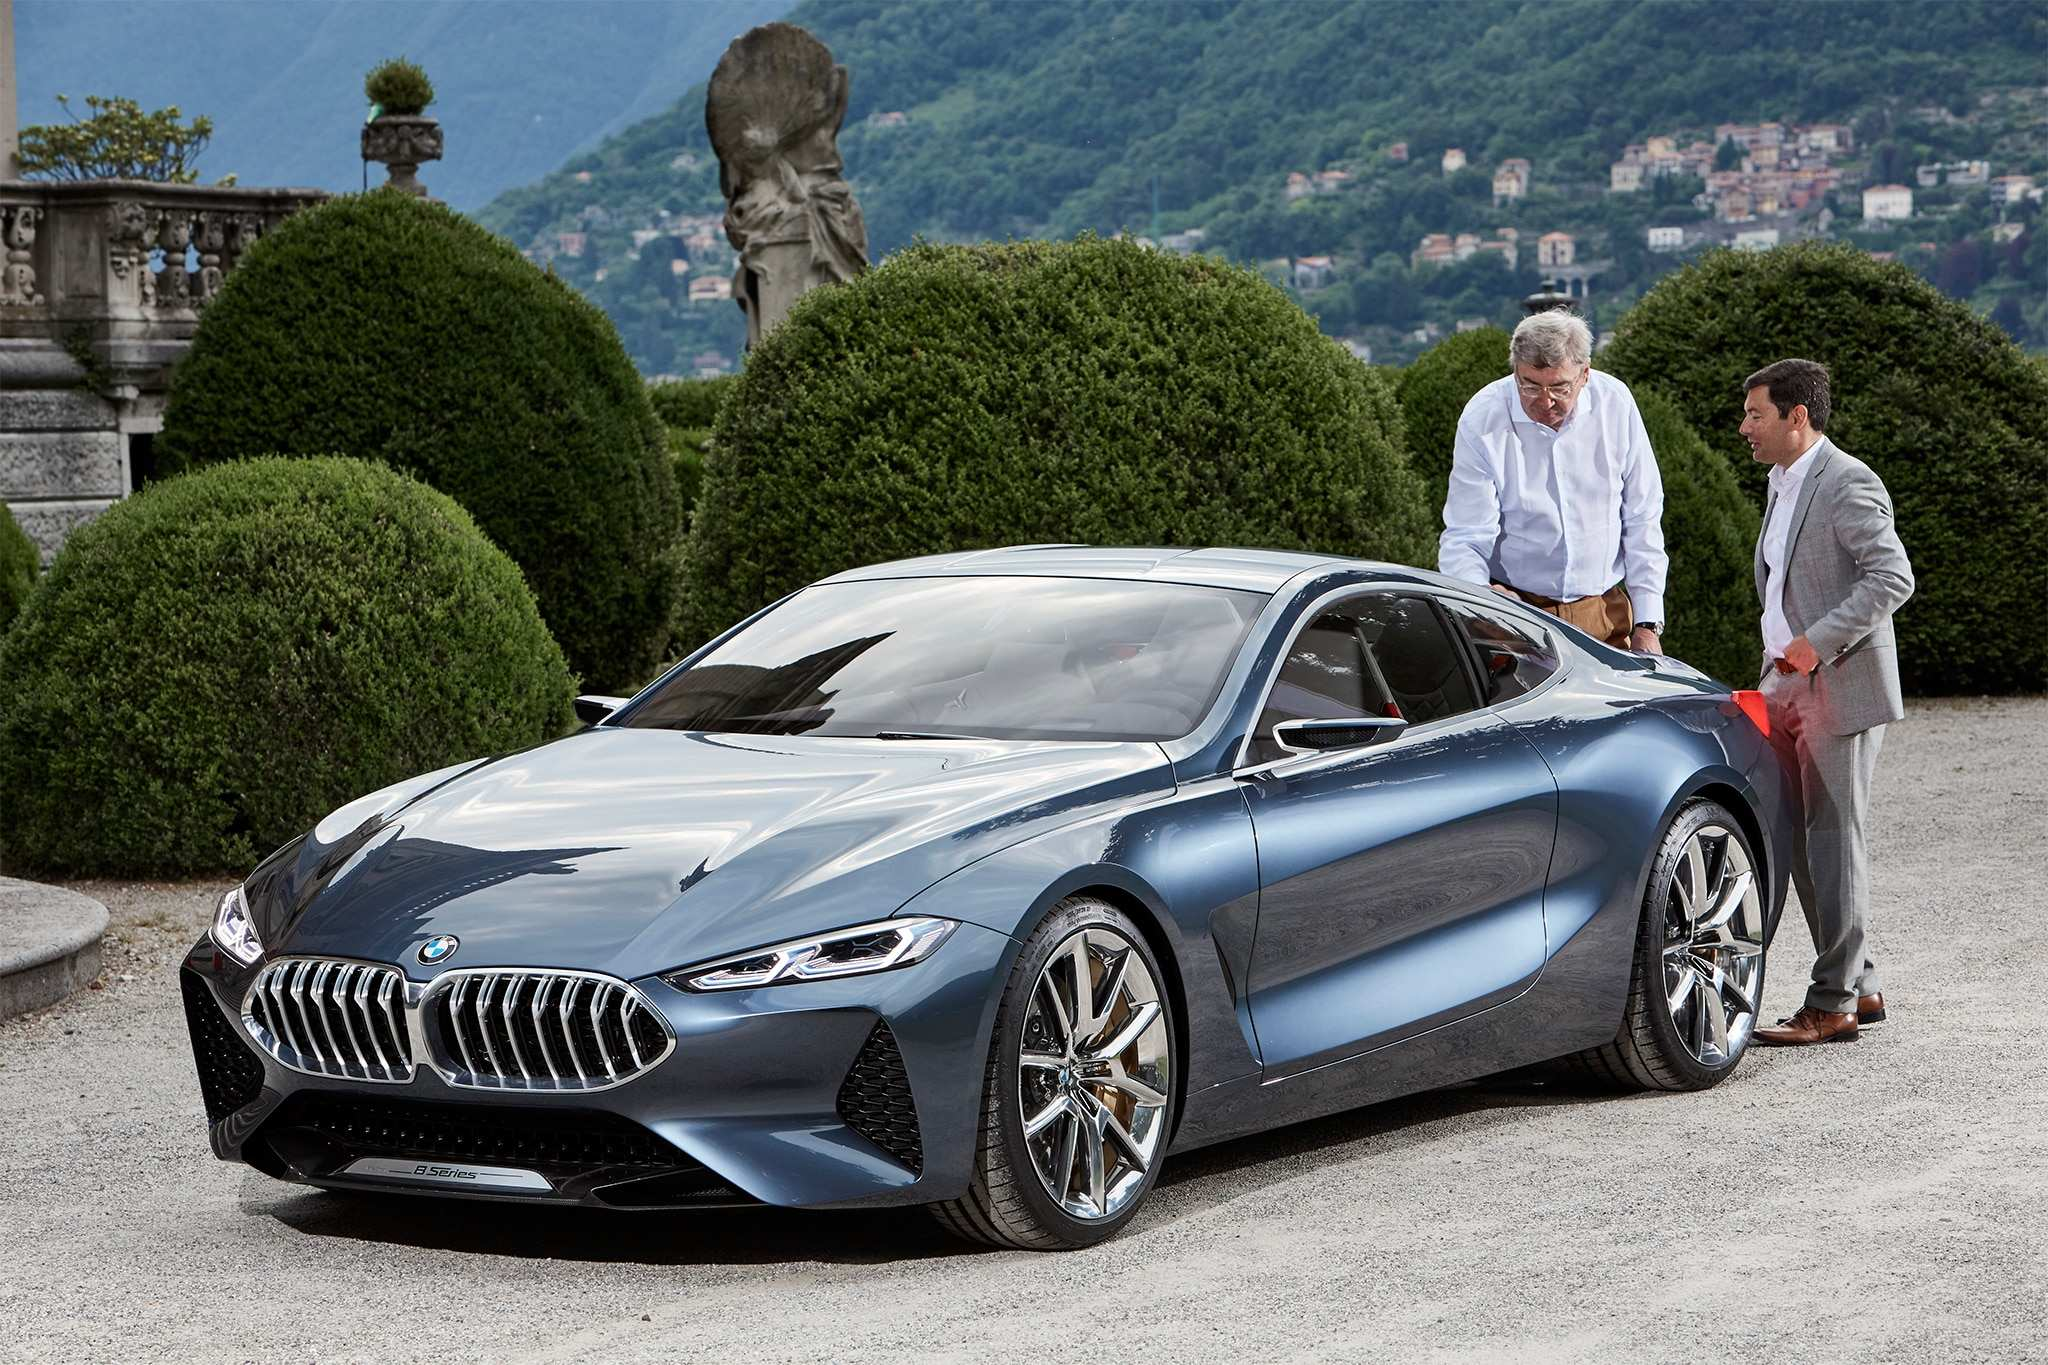 99 Concept of 2020 Bmw 8 Series Price Pricing for 2020 Bmw 8 Series Price